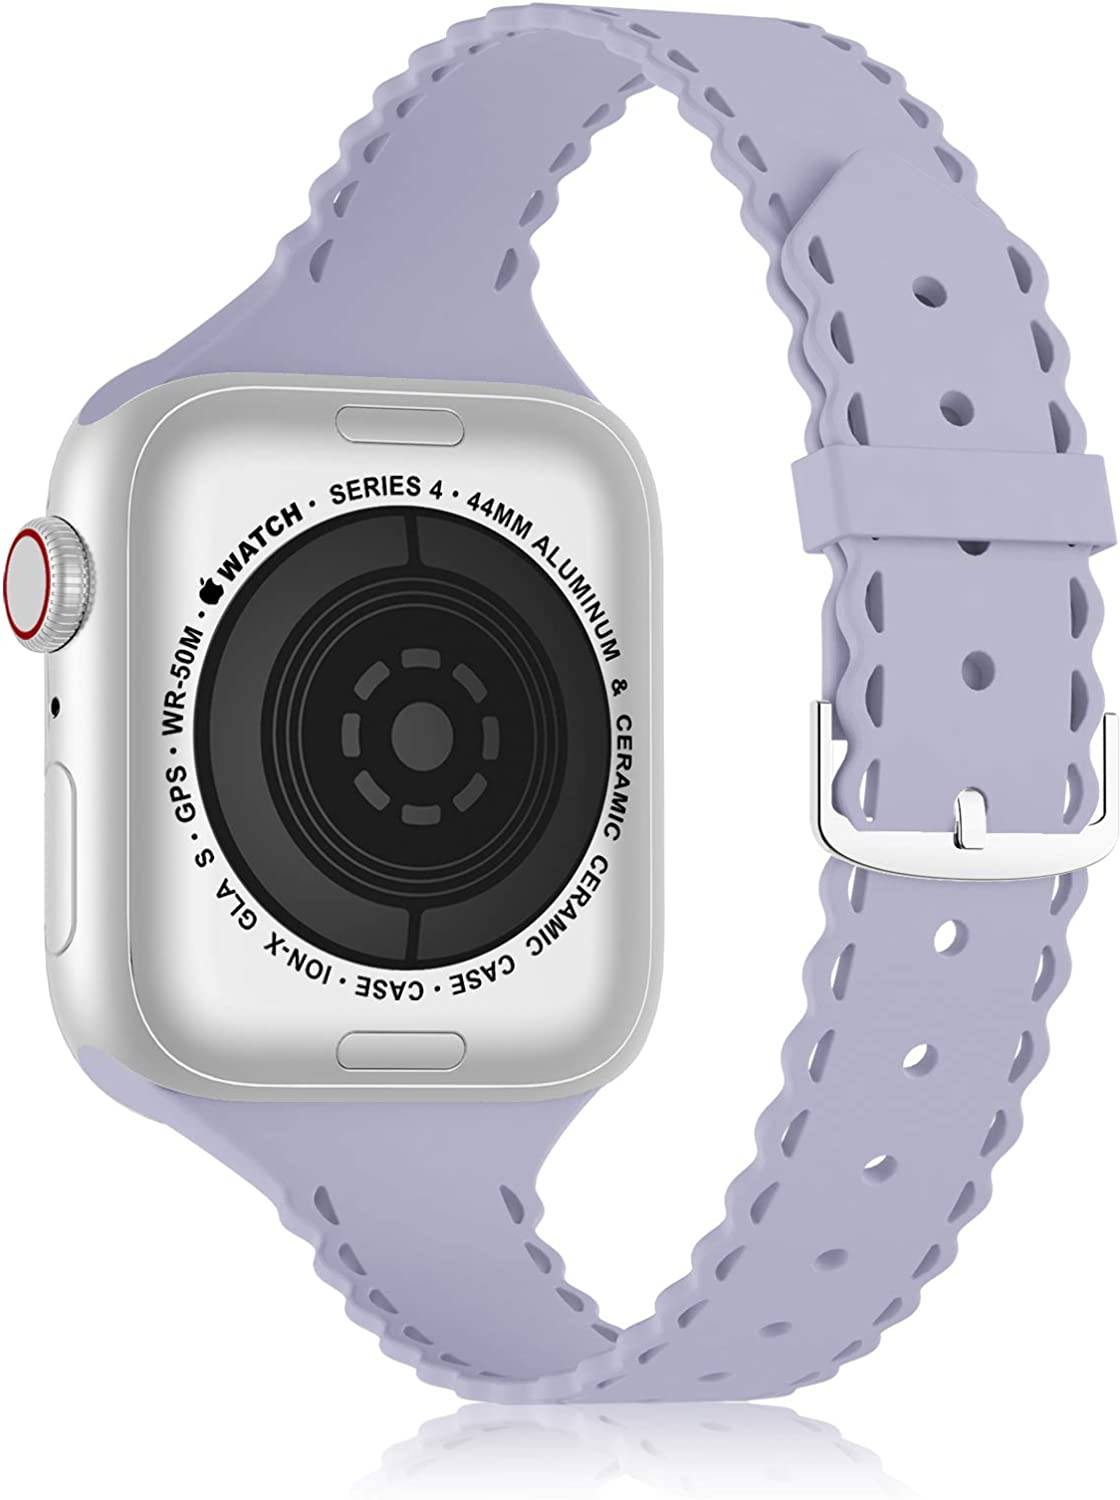 YAXIN Compatible with Apple Watch Band 38mm 40mm Narrow Slim iWatch Bands Thin Sport Soft Silicone Wristband Strap Compatible for iWatch Series 6 5 4 3 2 1 SE Women,Lavender